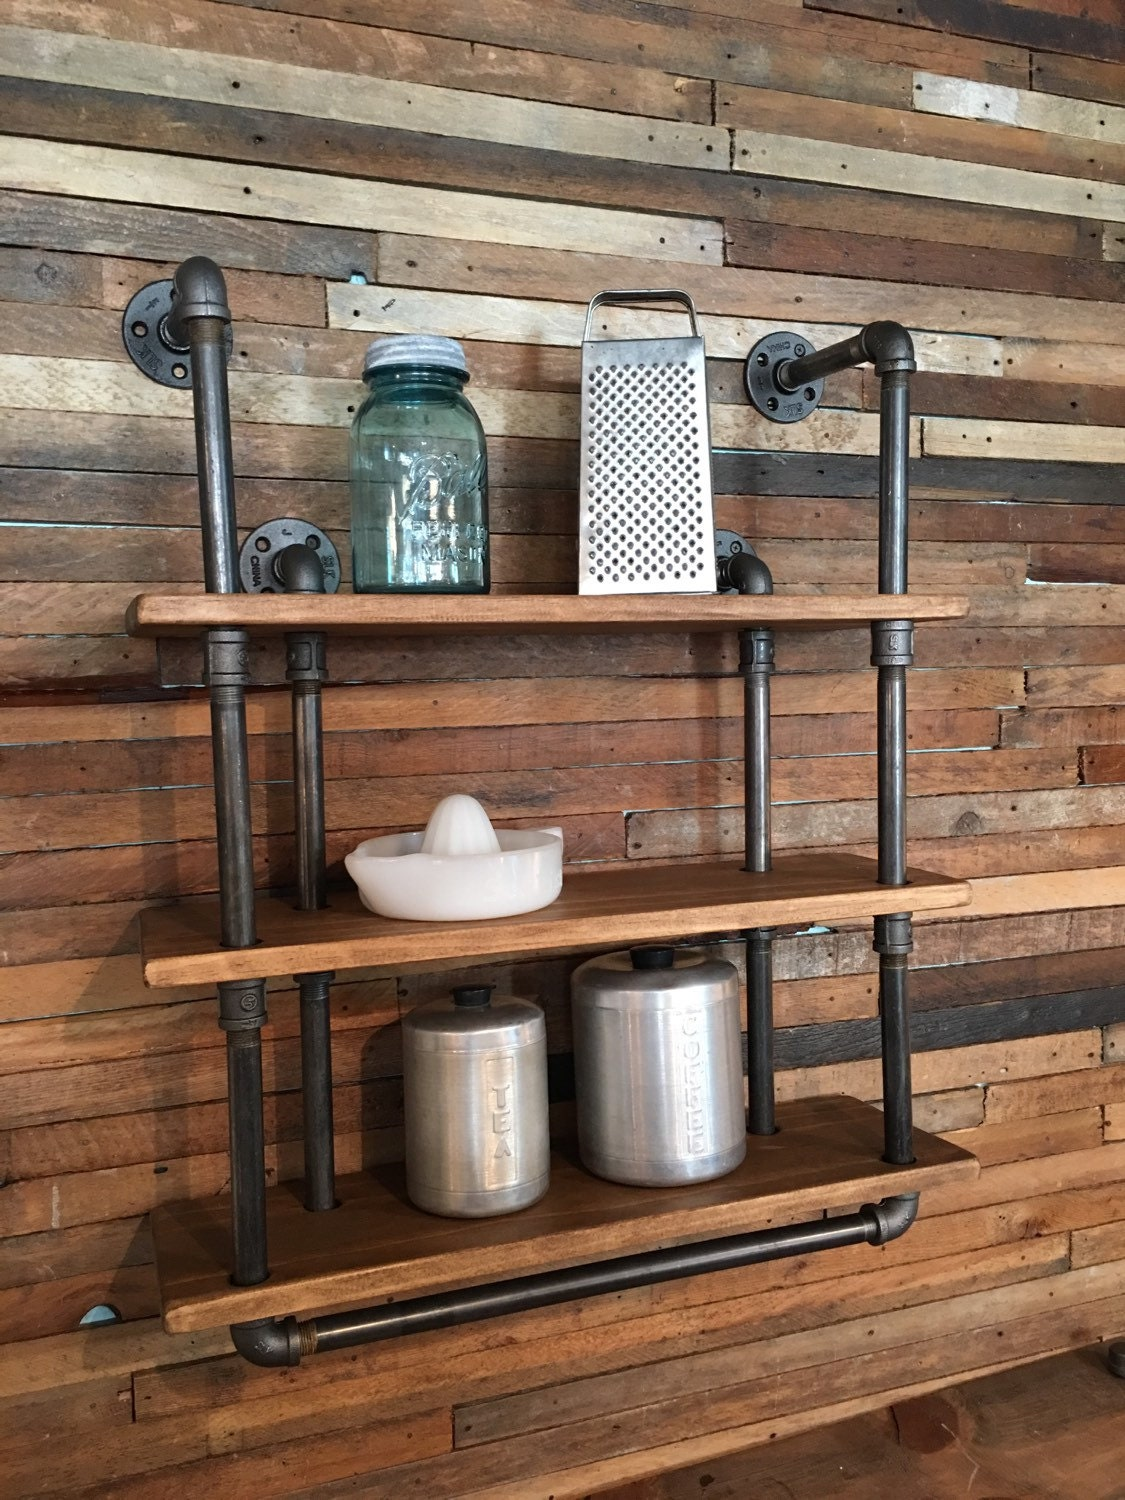 3 shelf industrial gas pipe wall shelf with towel bar. Black Bedroom Furniture Sets. Home Design Ideas